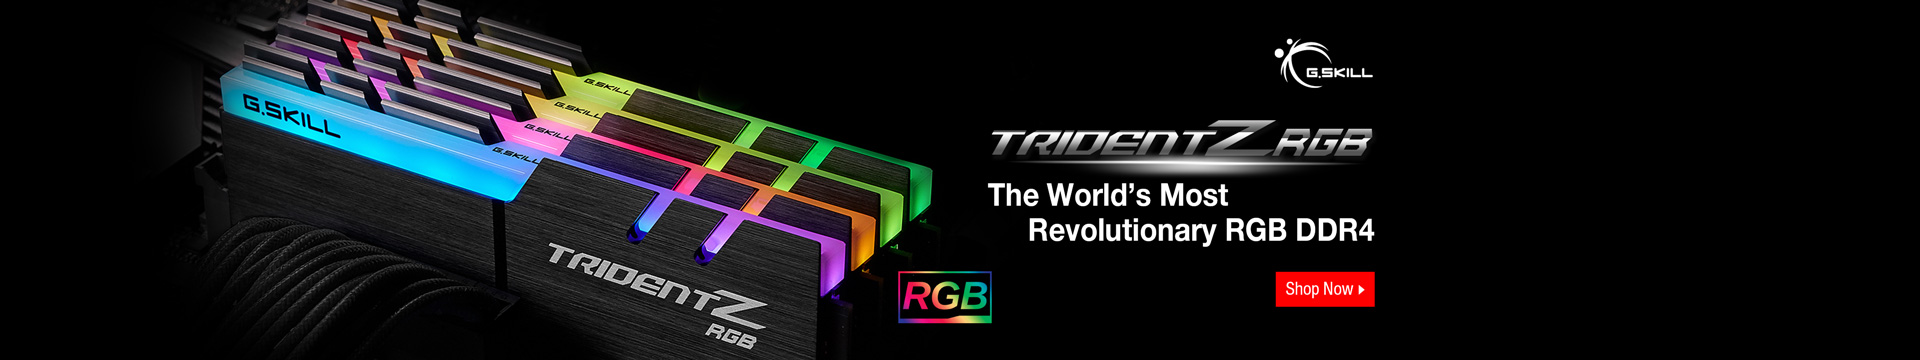 The World' Most Revolutionary RGB